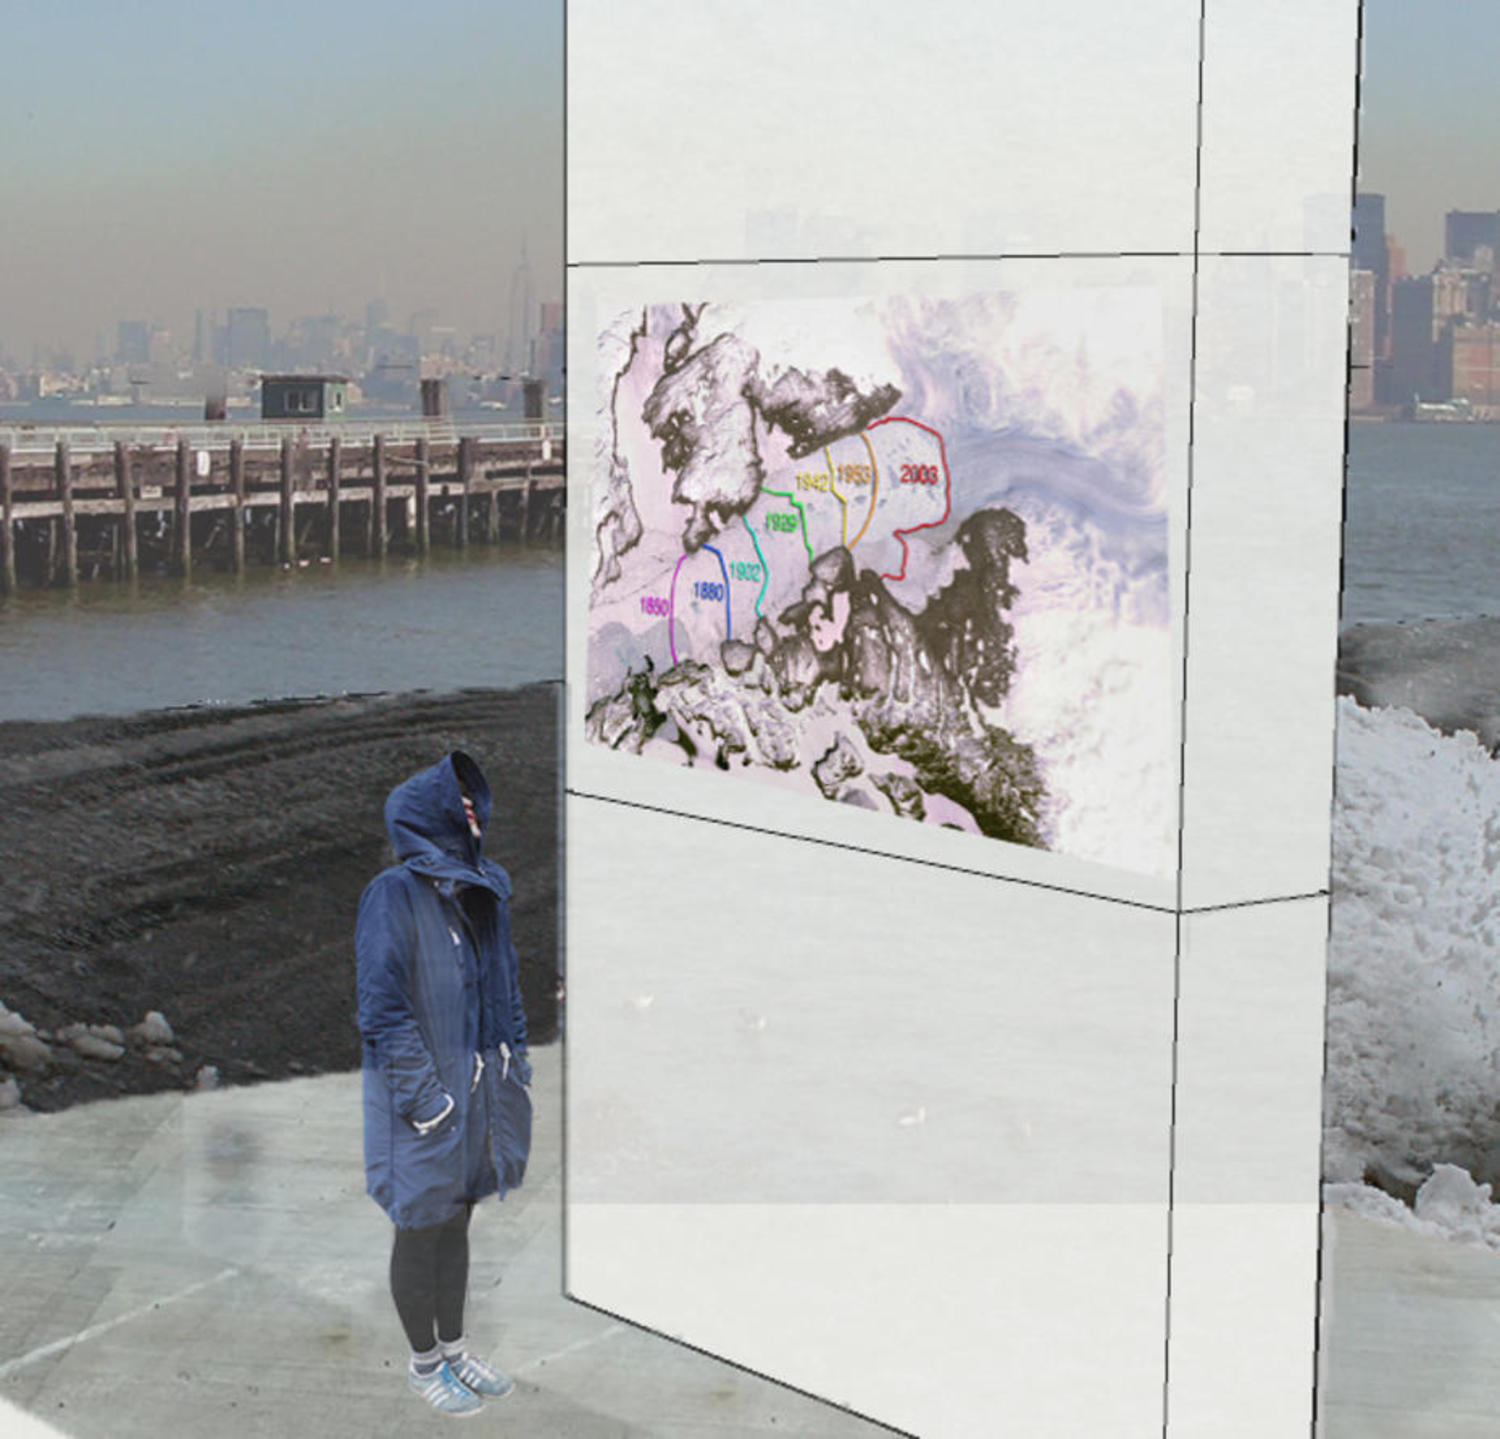 Illustration from RISD student Ann McKinnon's proposal for the future Climate Museum